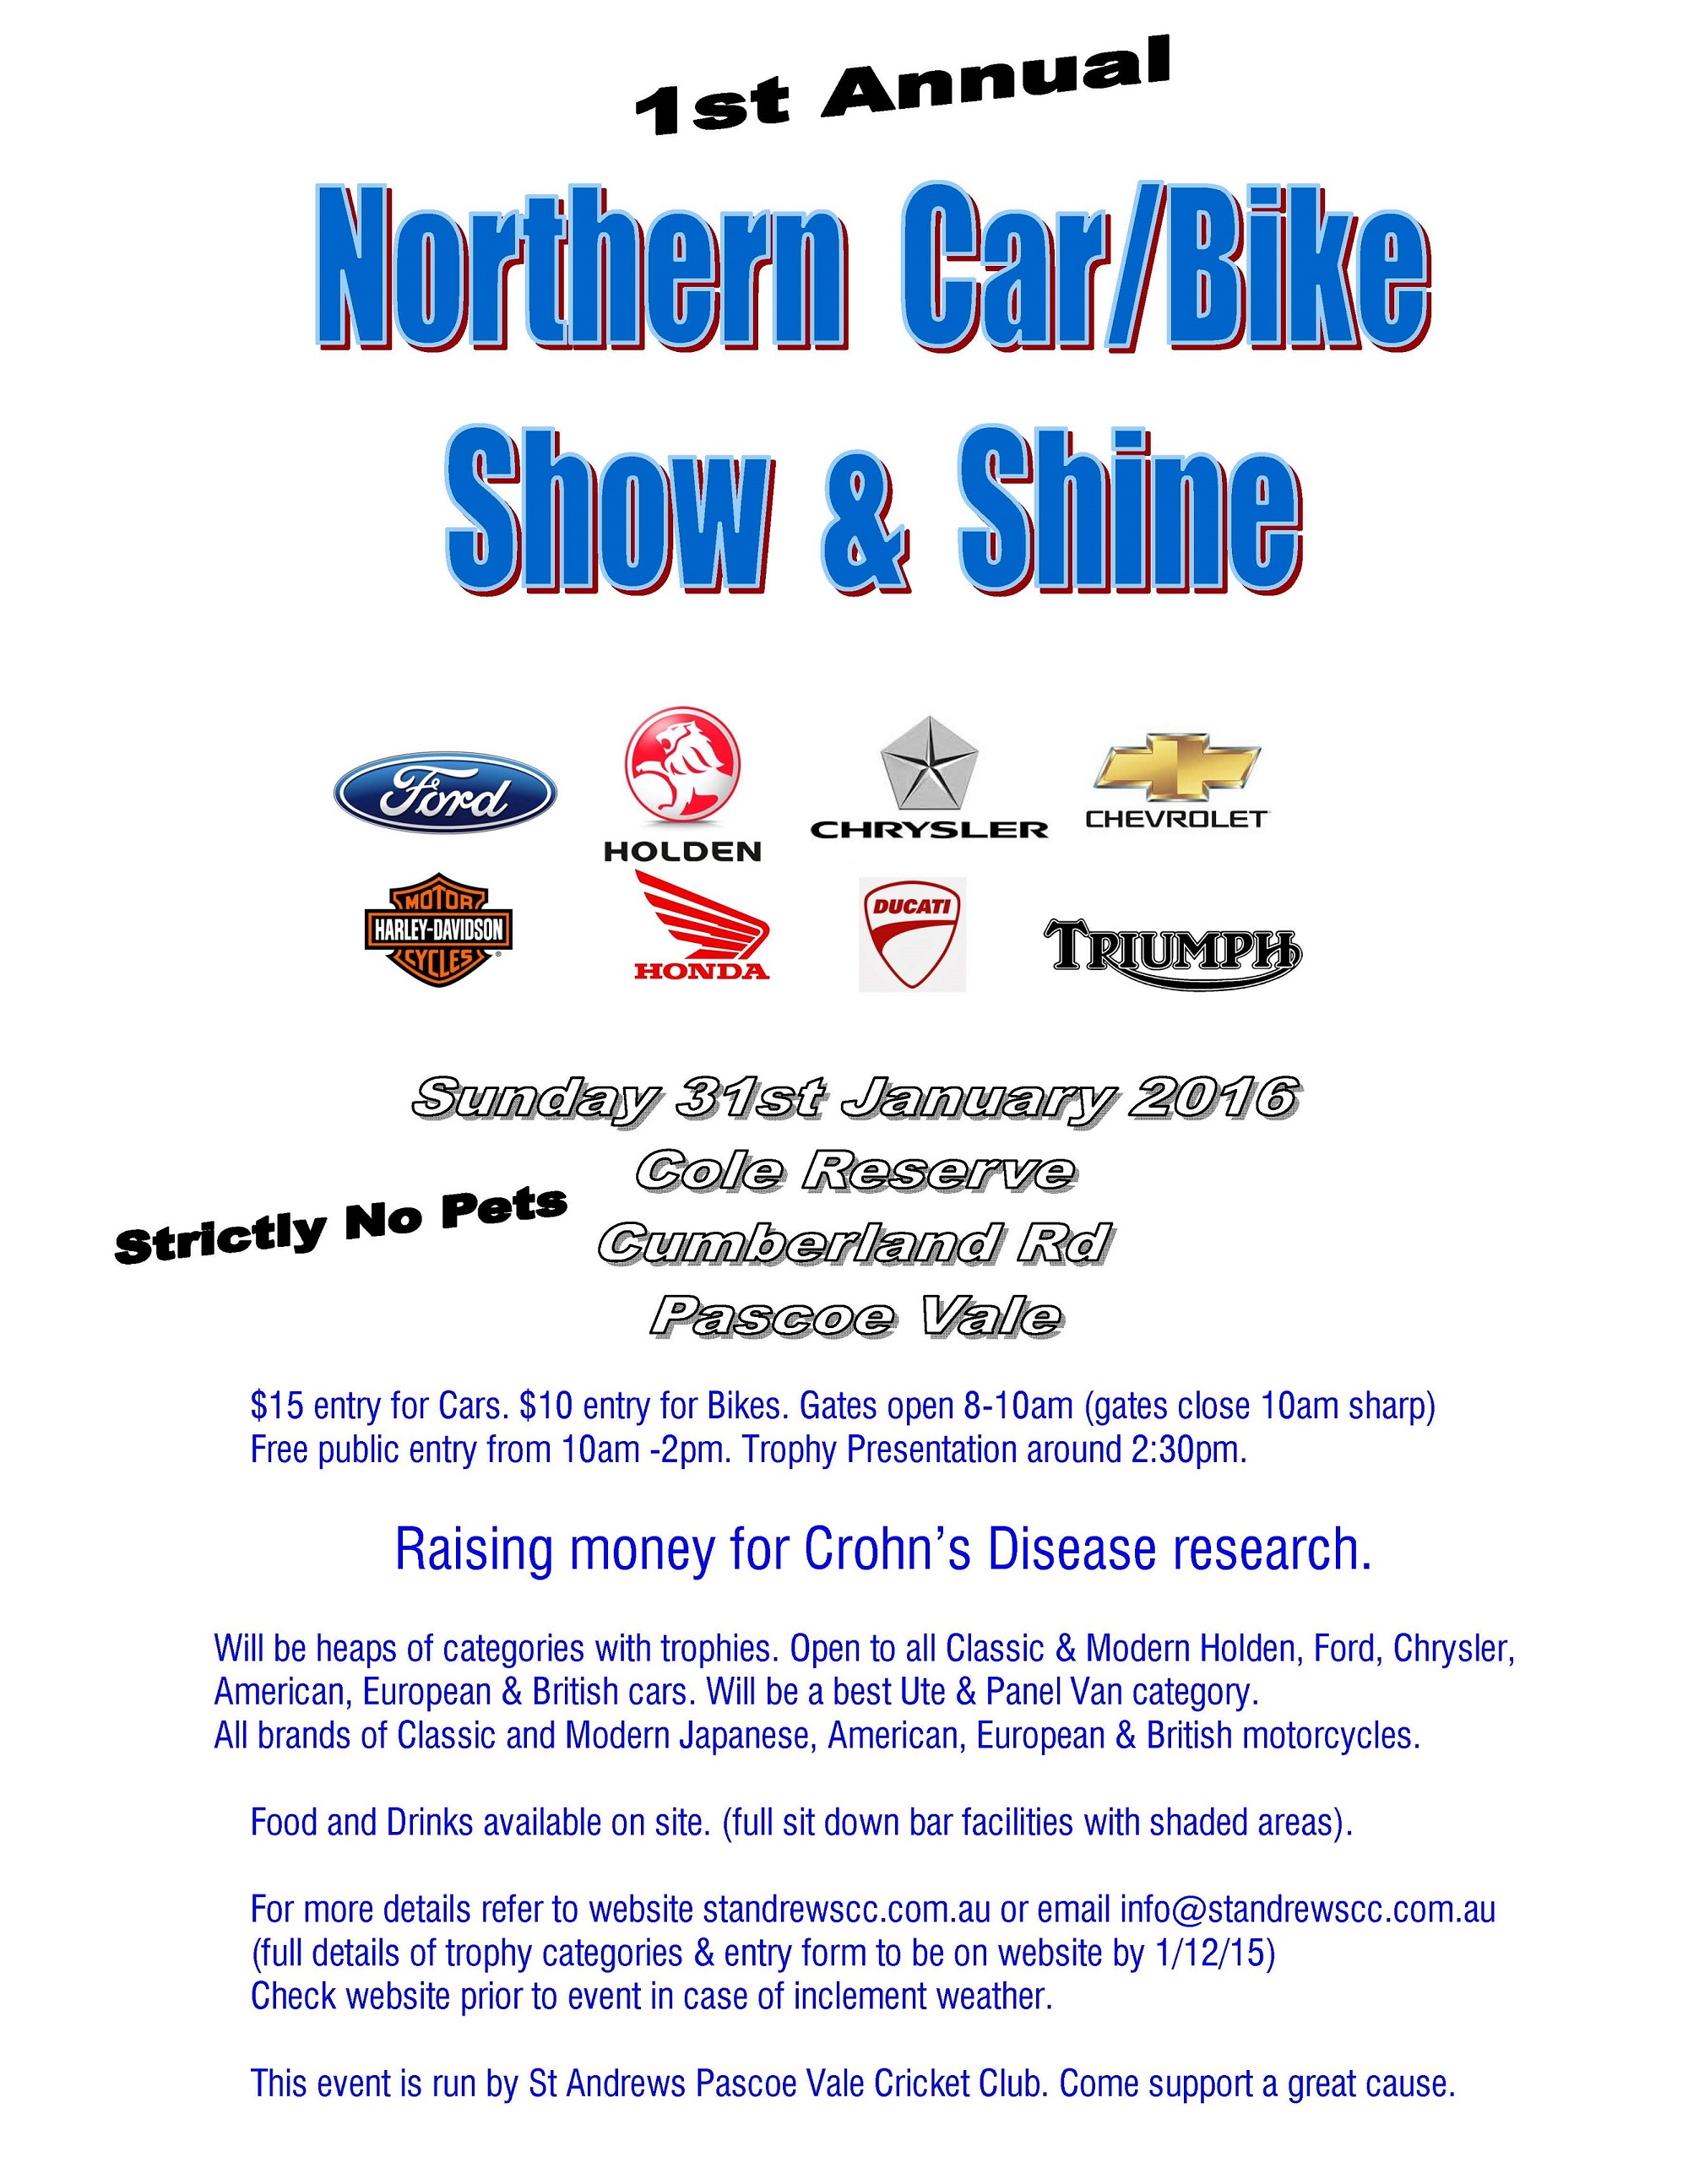 St Annual Northern CarBike Show Shine St Andrews Cricket Club - Car show trophy categories